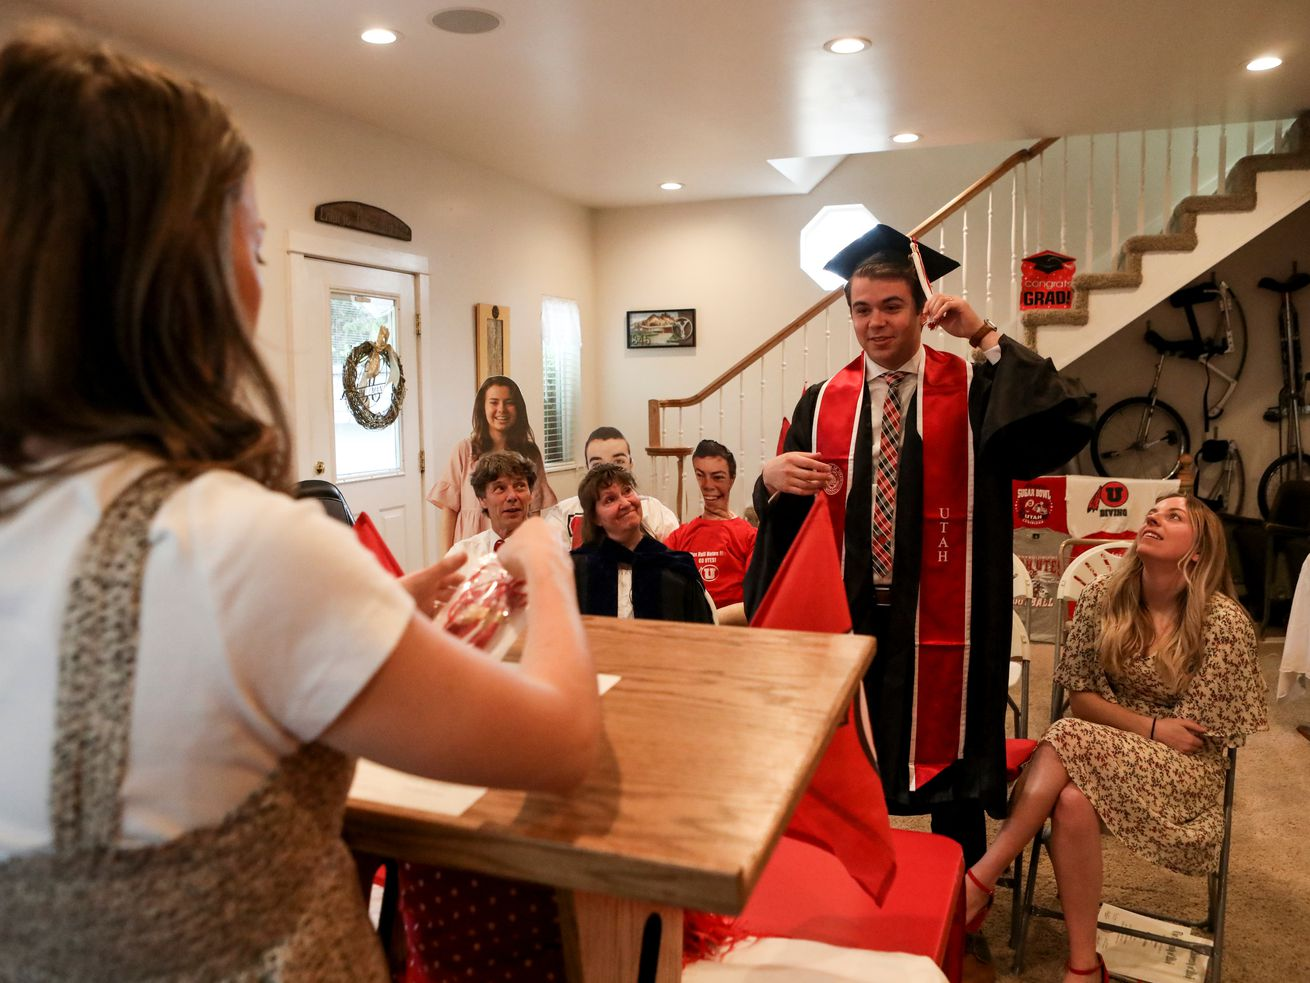 Ceciley Hallman Herod directs her brother Joseph Hallman to turn his tassel during a mock commencement ceremony in their parents' Sugar House home amid the COVID-19 pandemic on Thursday, April 30, 2020. Hallman earned bachelor's degrees in Latin American studies, Spanish and international business with an emphasis in trade commerce in 2019 with hopes of walking during the spring 2020 commencement ceremony.